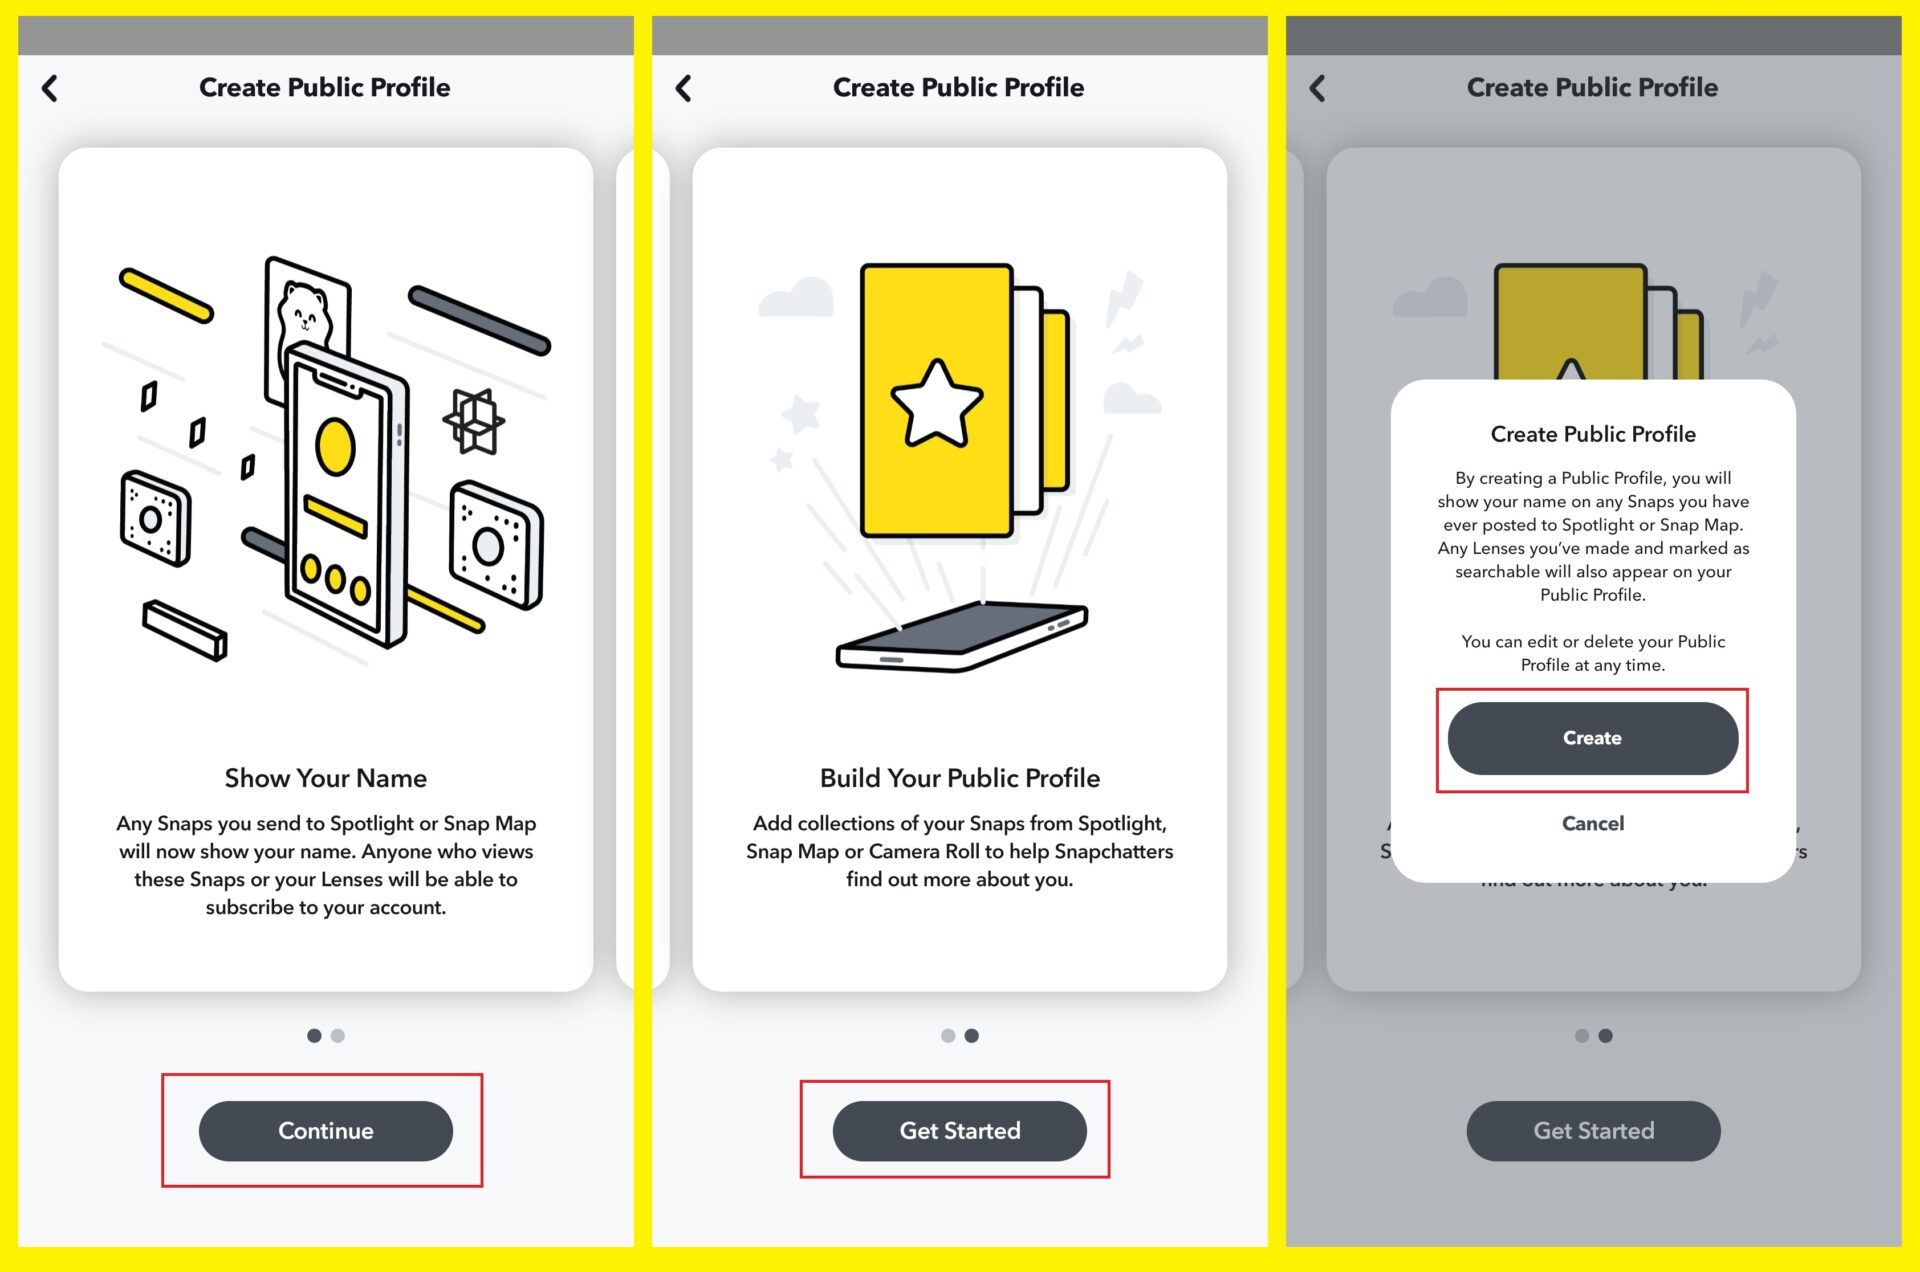 Create a public profile on Snapchat - Get Started page